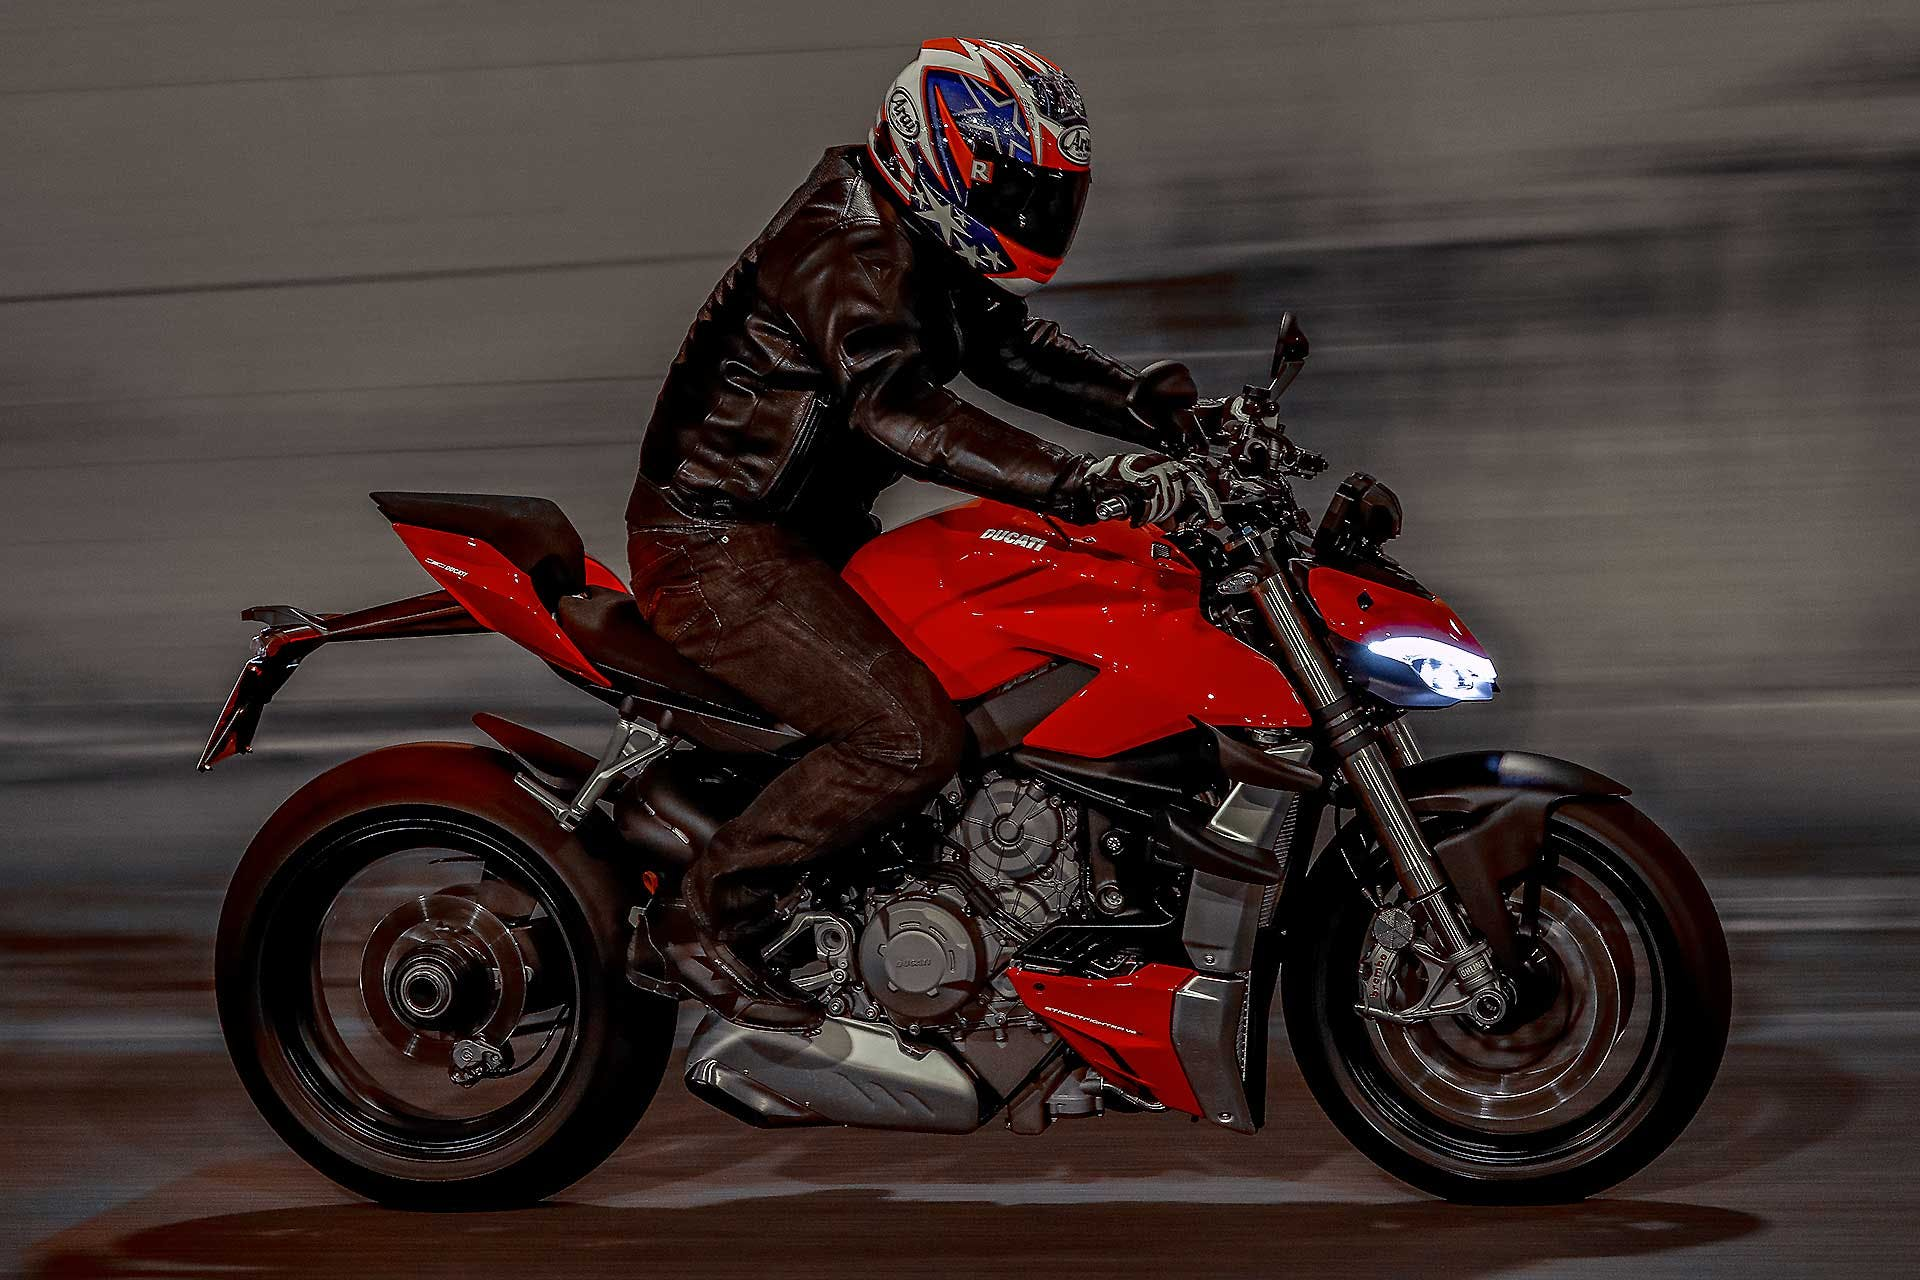 Ducati Streetfighter V4 S rossa, in galleria